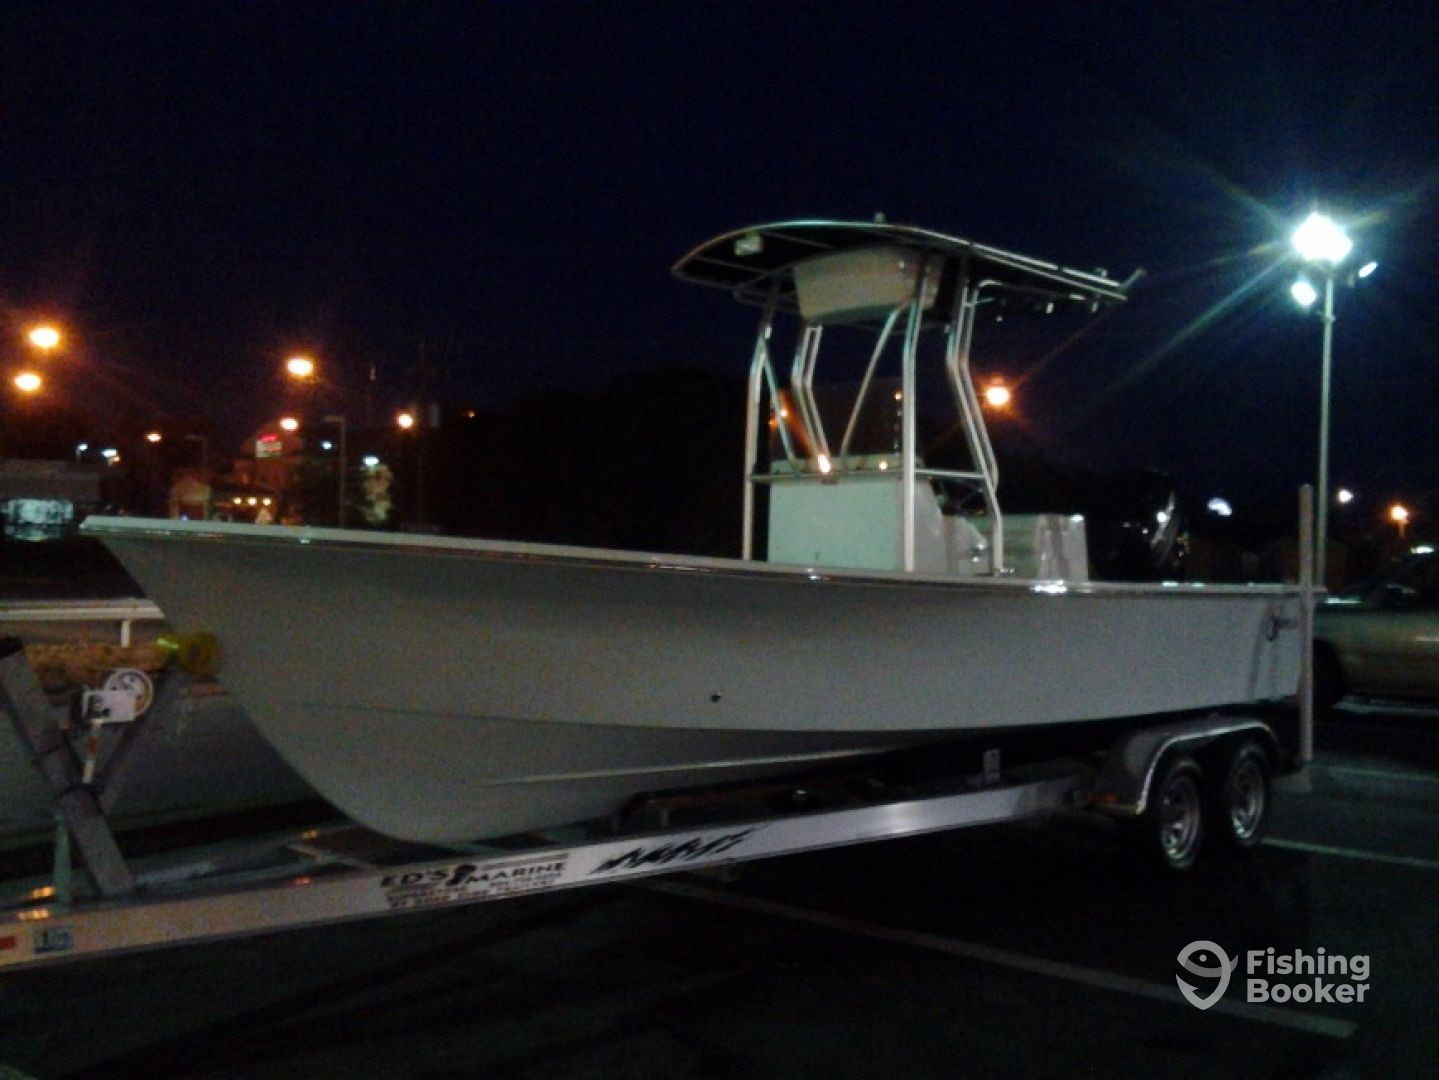 23ft C-Hawk 2014 one of many choices of boats available. Also have flats boat & flounder boat.